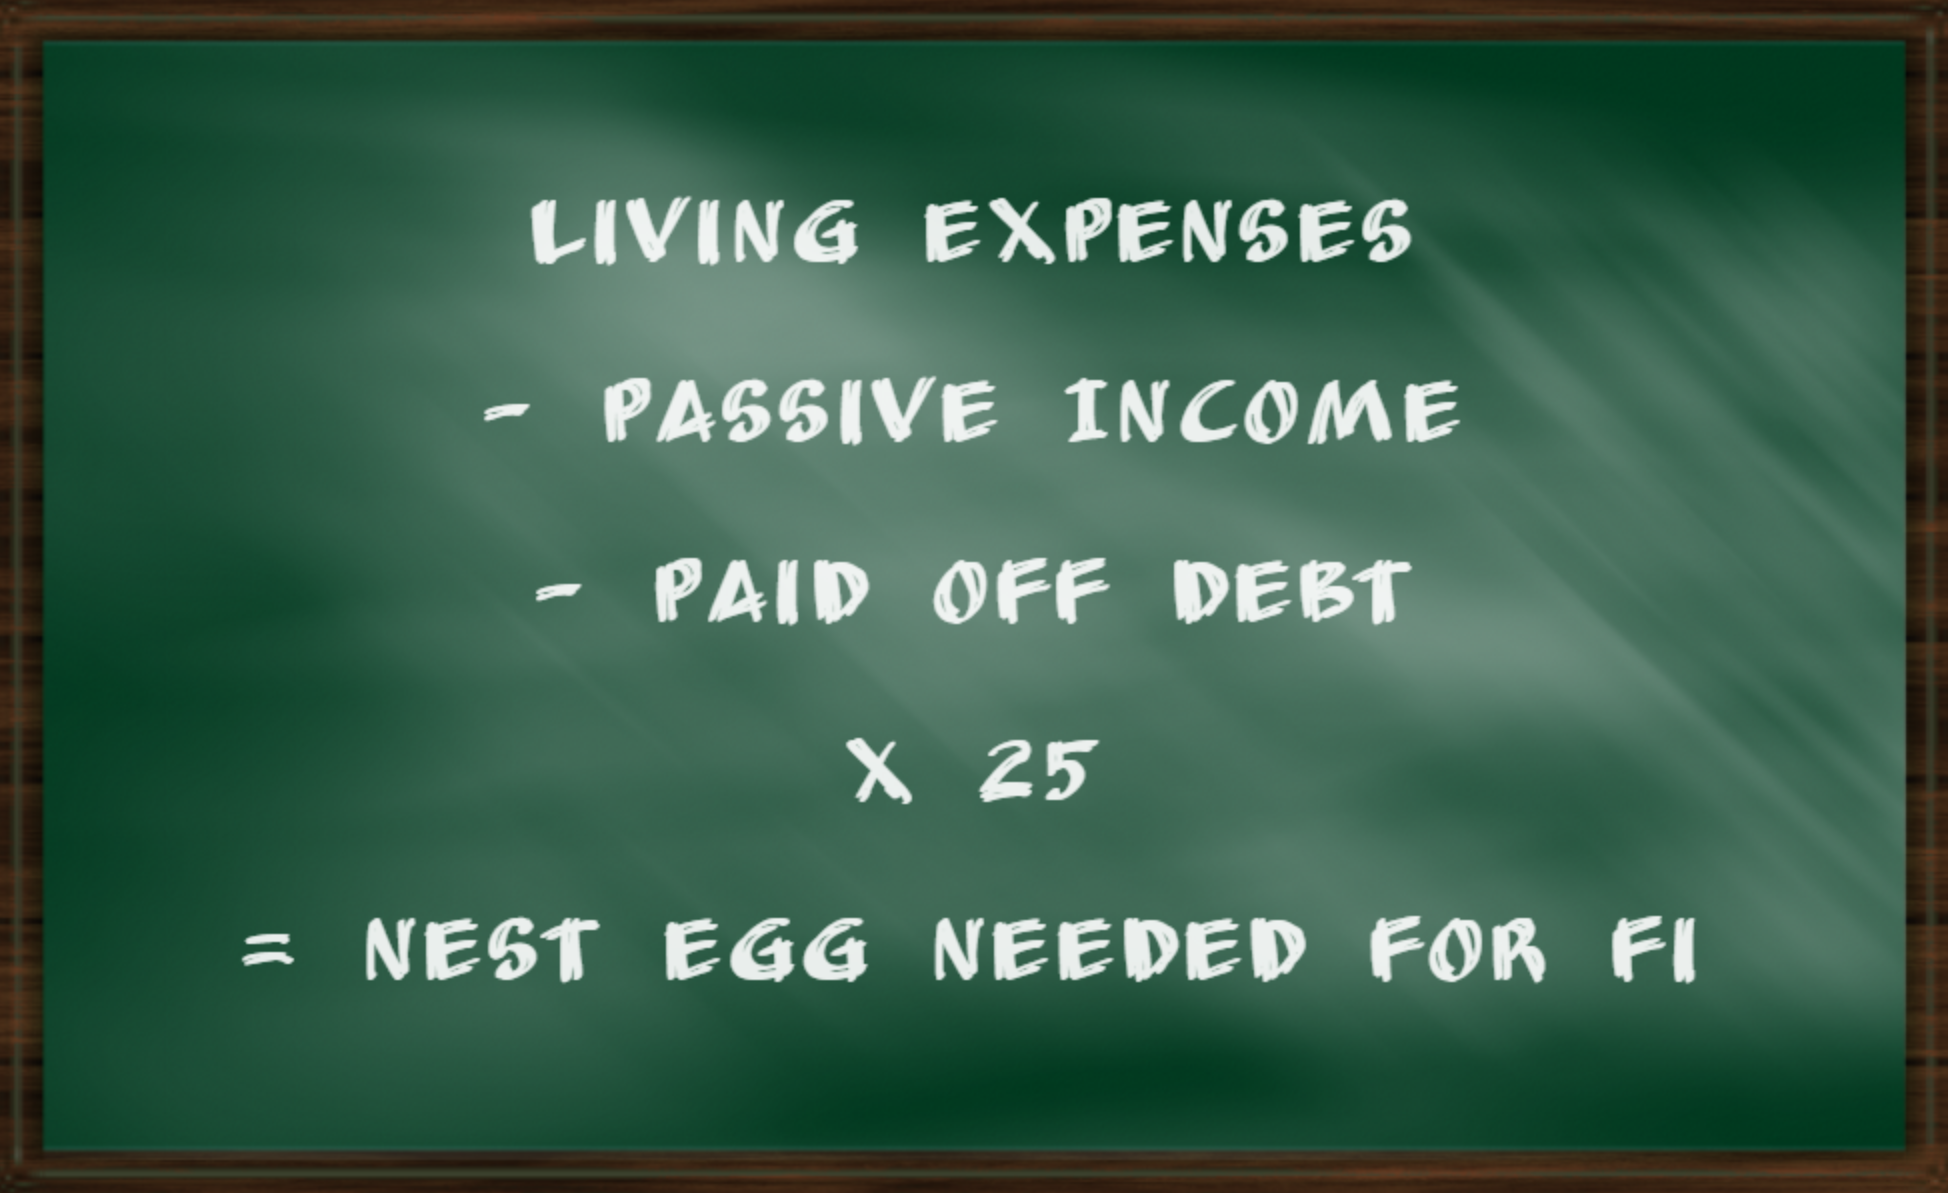 Annual Spending Needs - Annual Passive Income - Future Eliminated Debt Payments/Year x 25 = Investments Needed for Financial Freedom